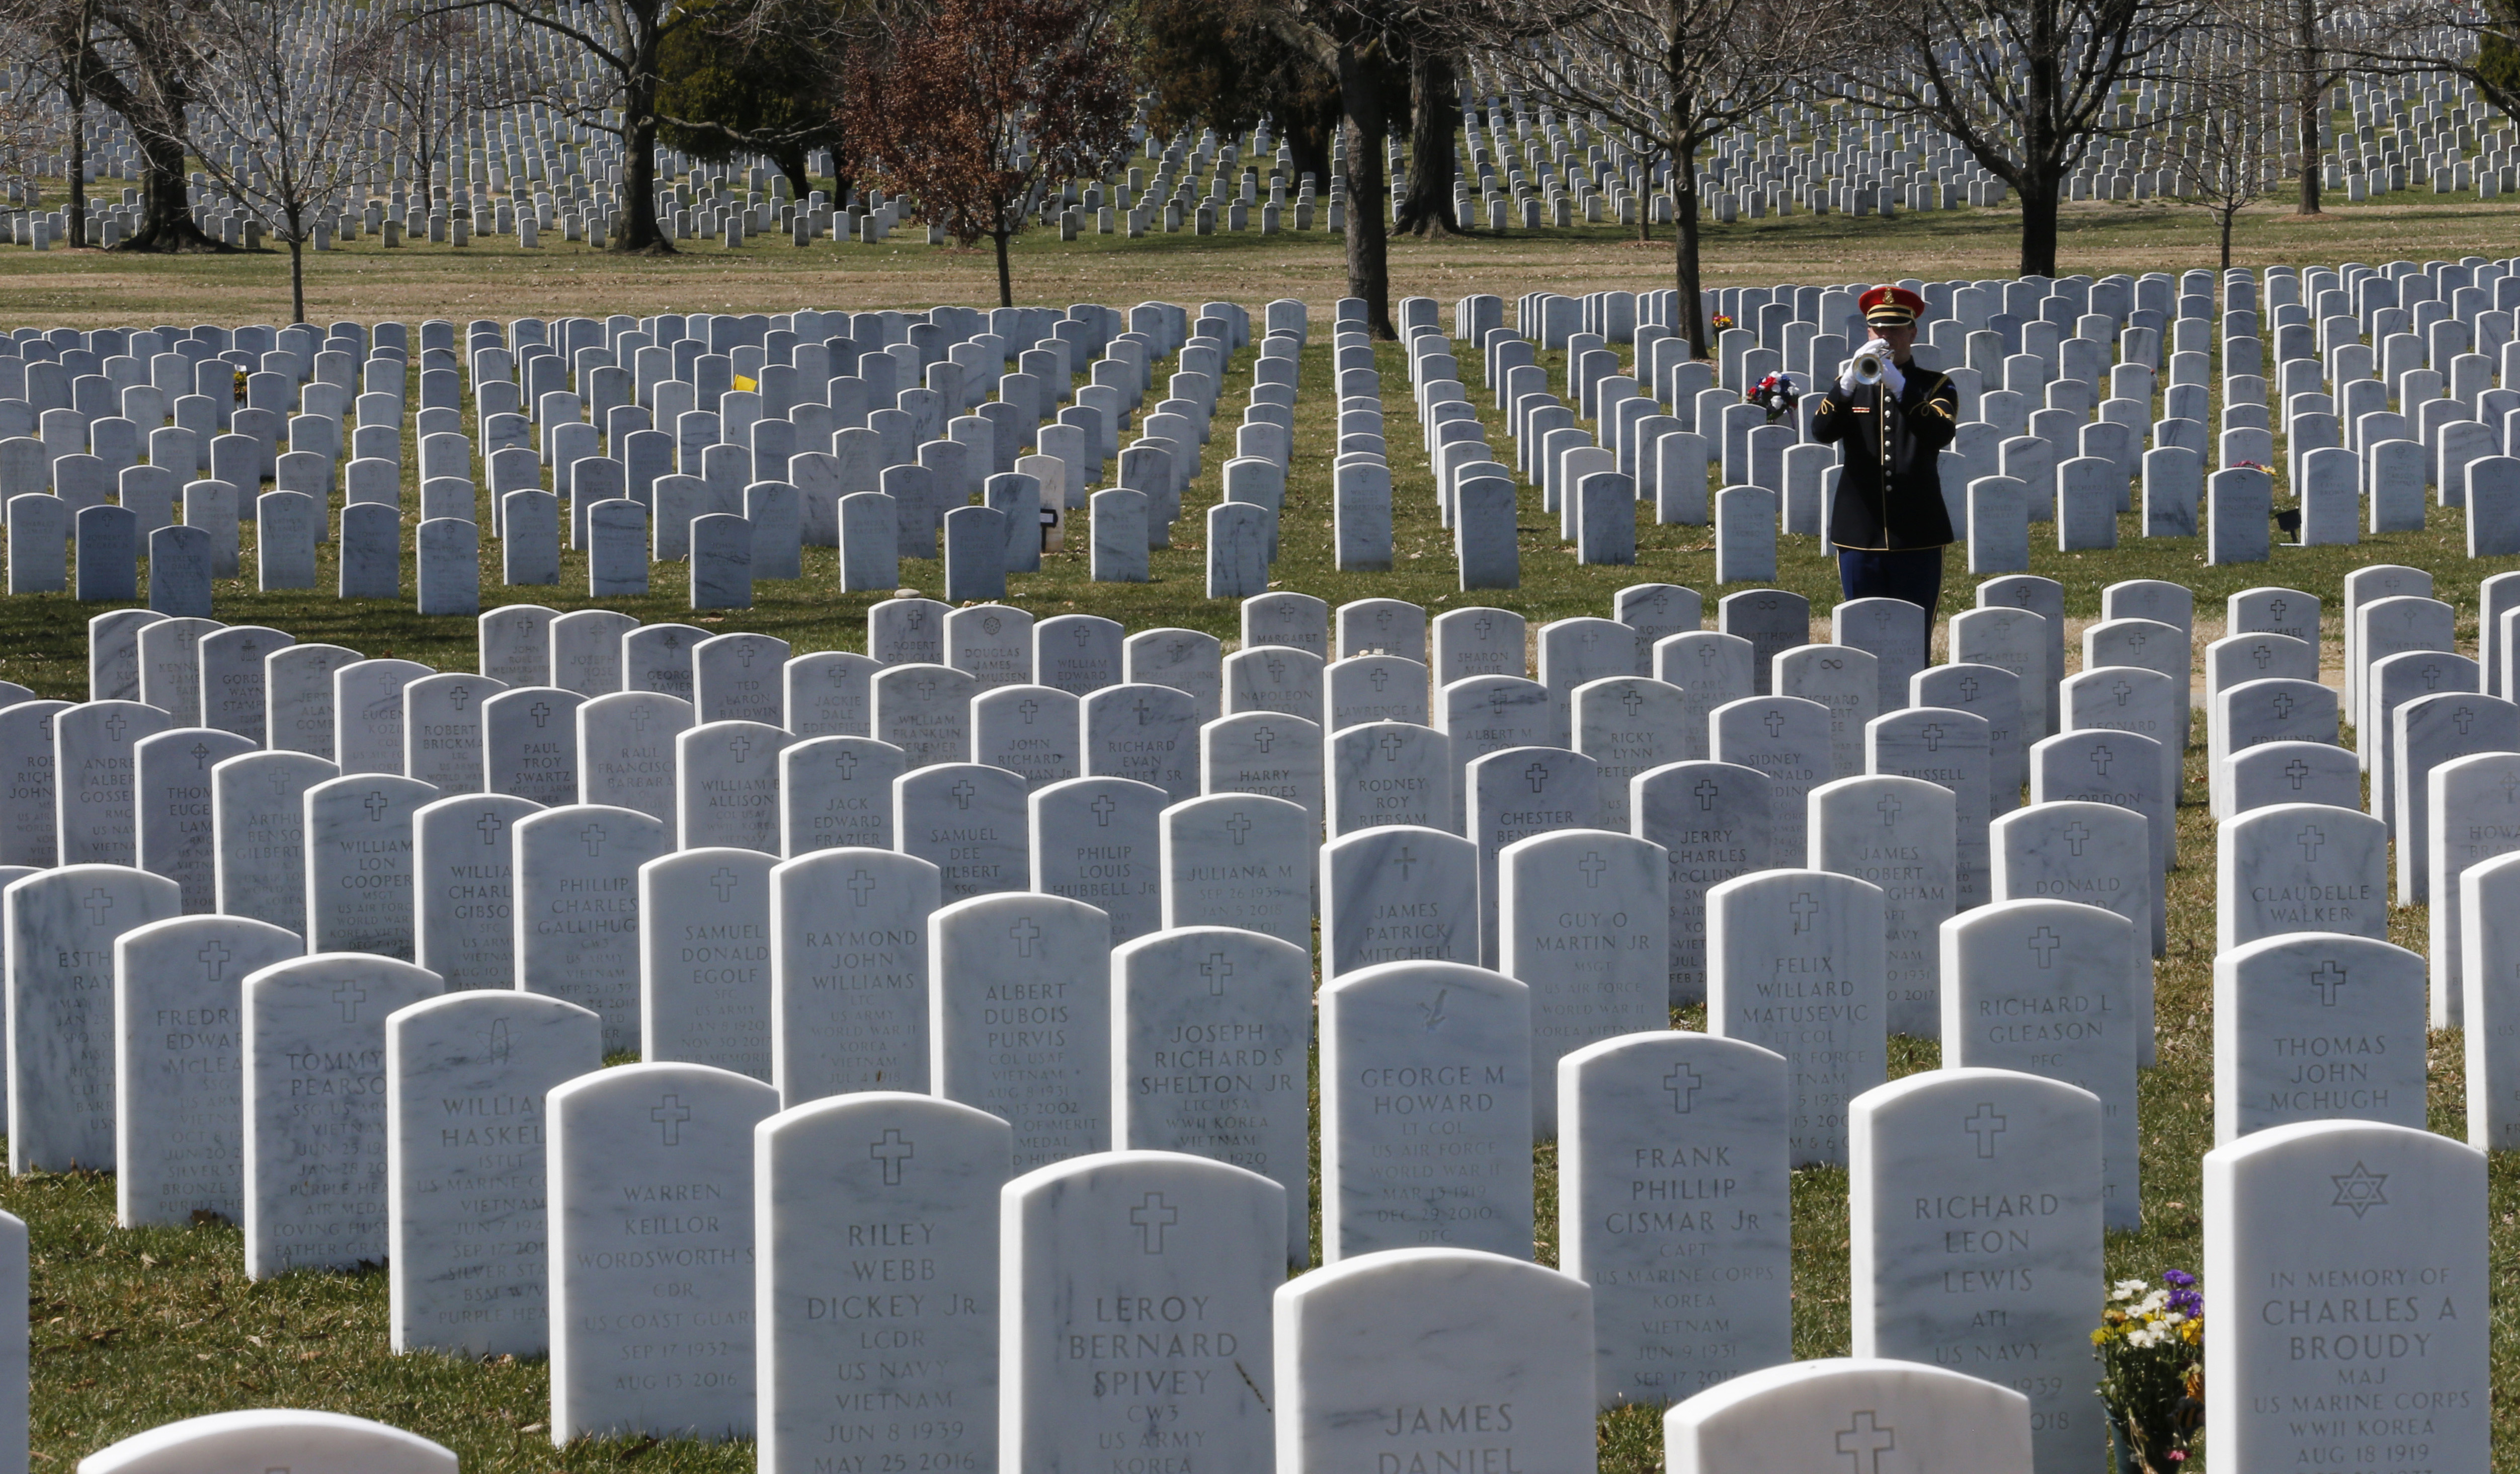 Plan to build 18 veteran cemeteries by 2017 so far behind it will take